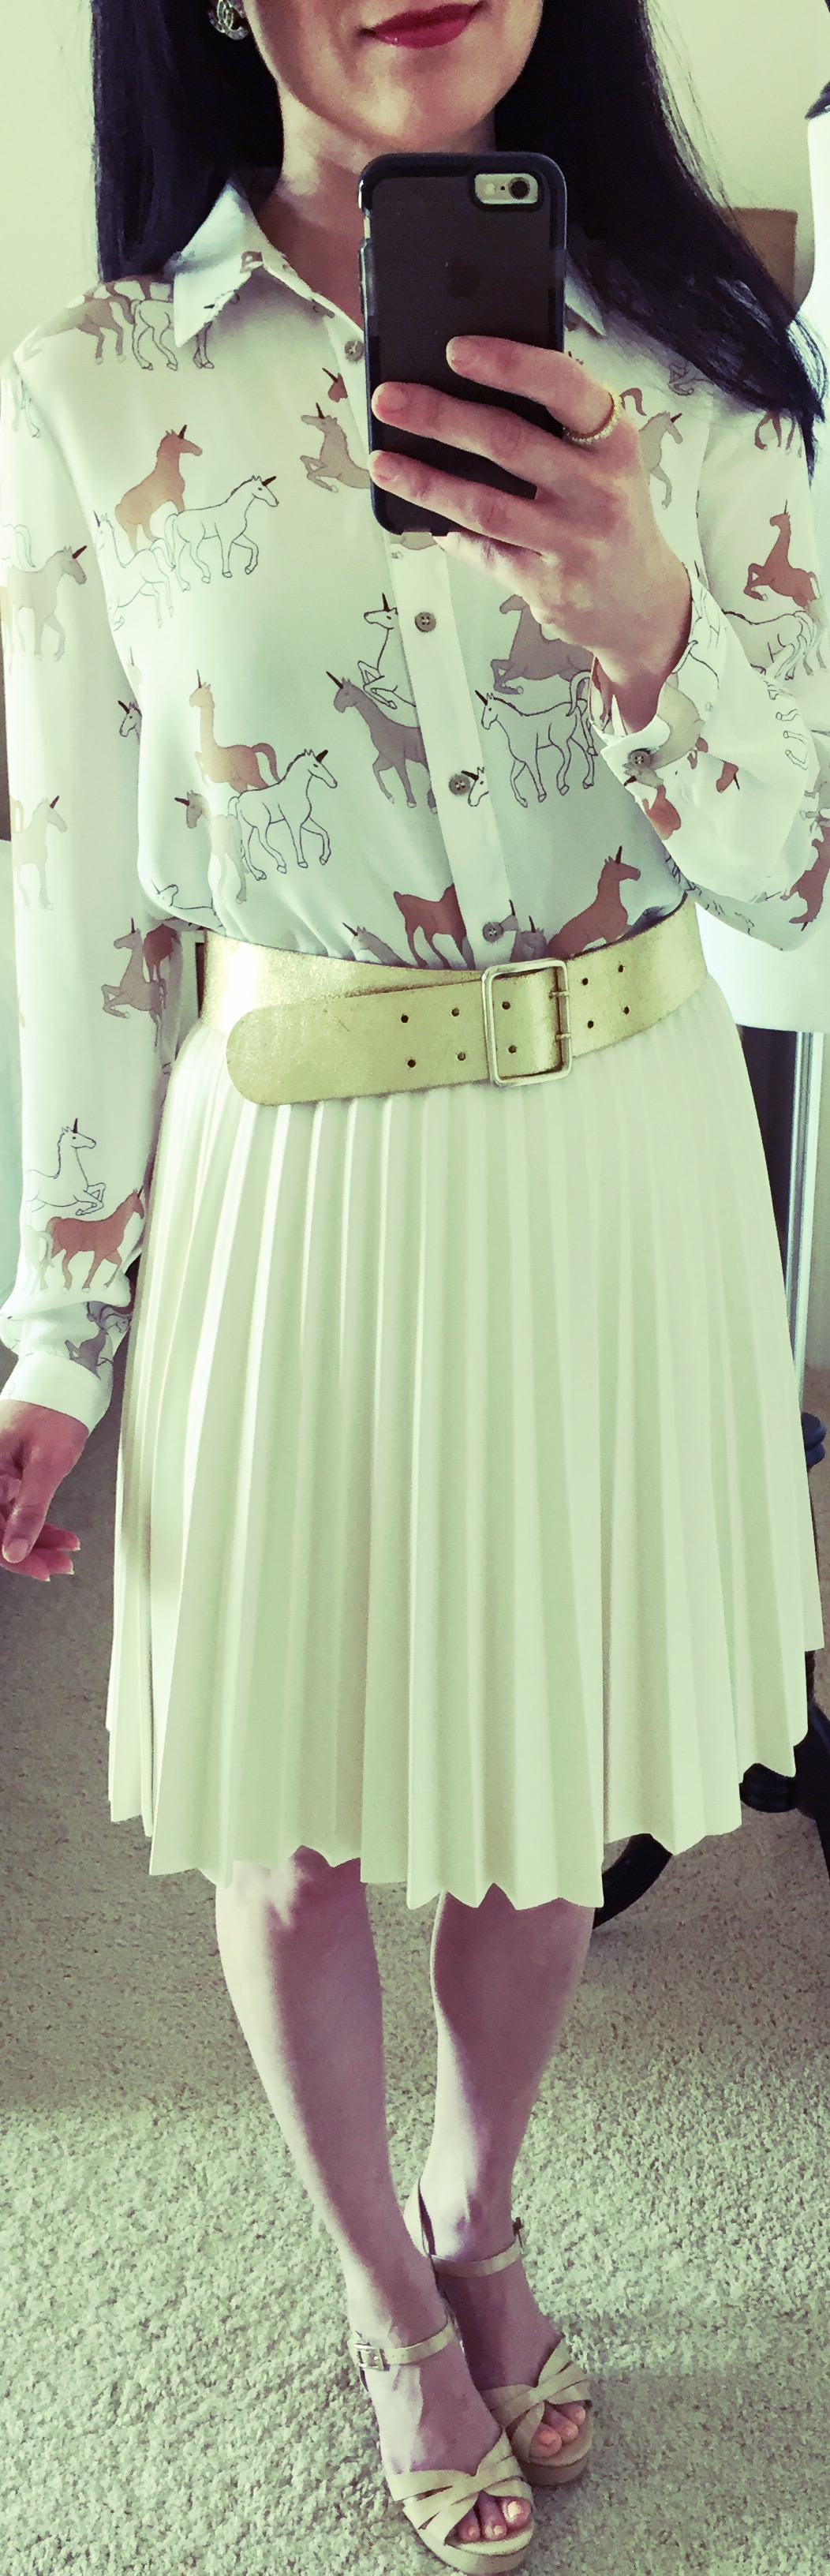 August 19th, Feeling special in Zara Unicorn Blouse and pleated faux leather skirt